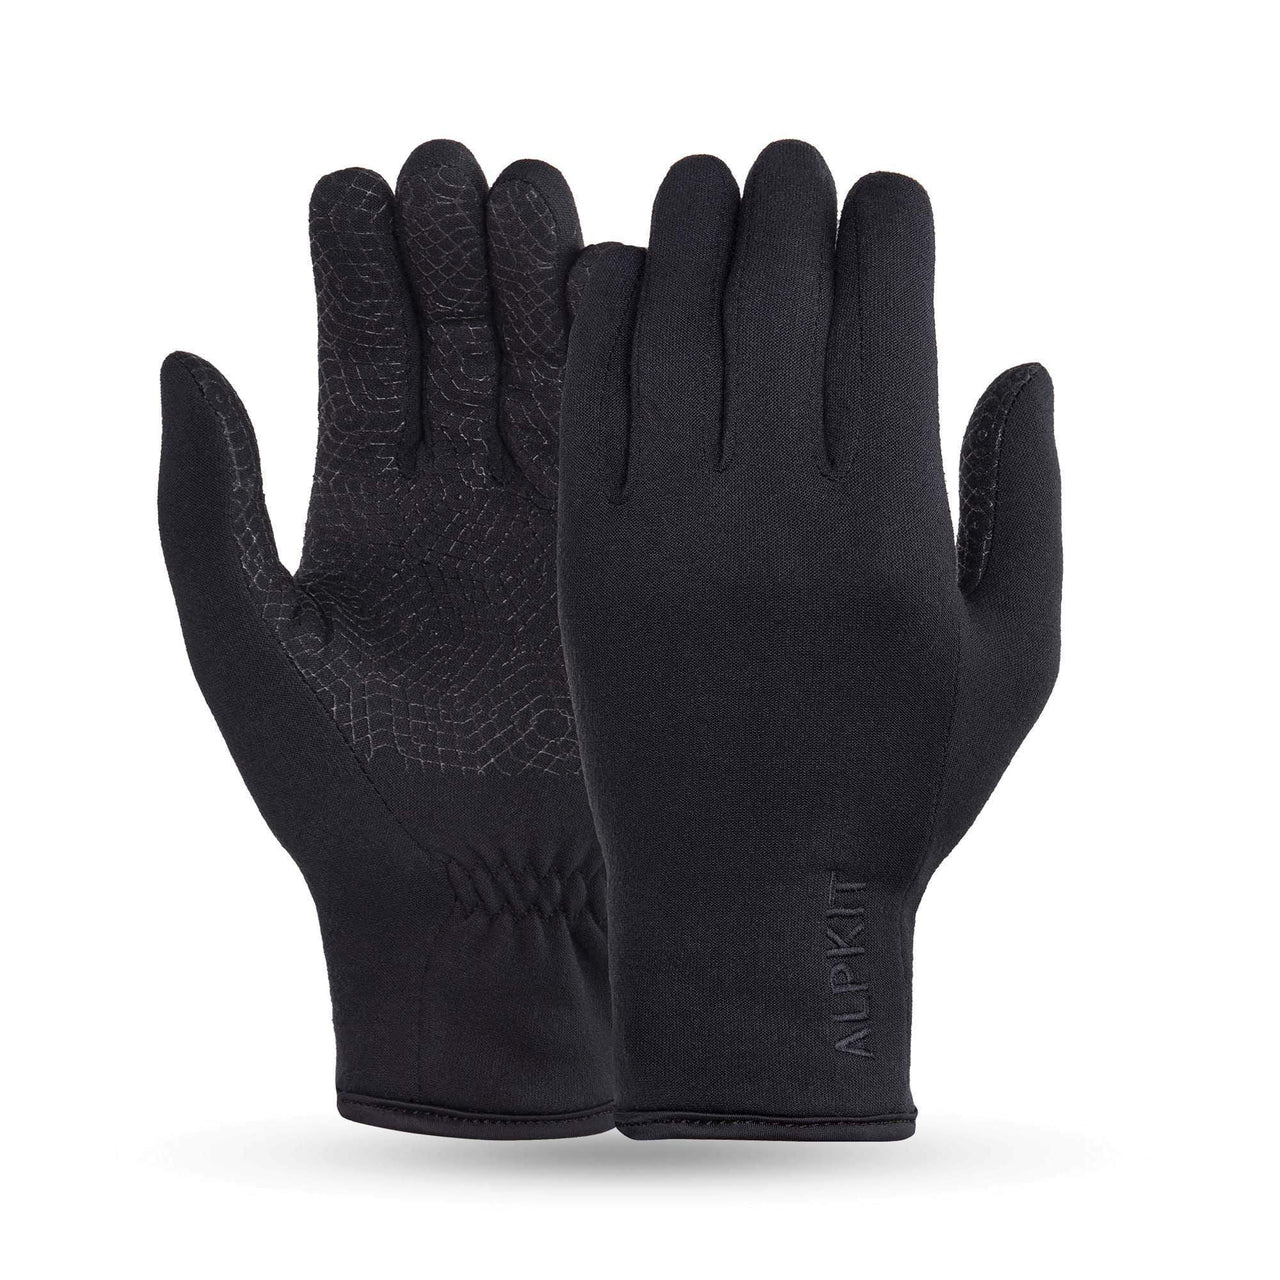 Aura Grip Glove